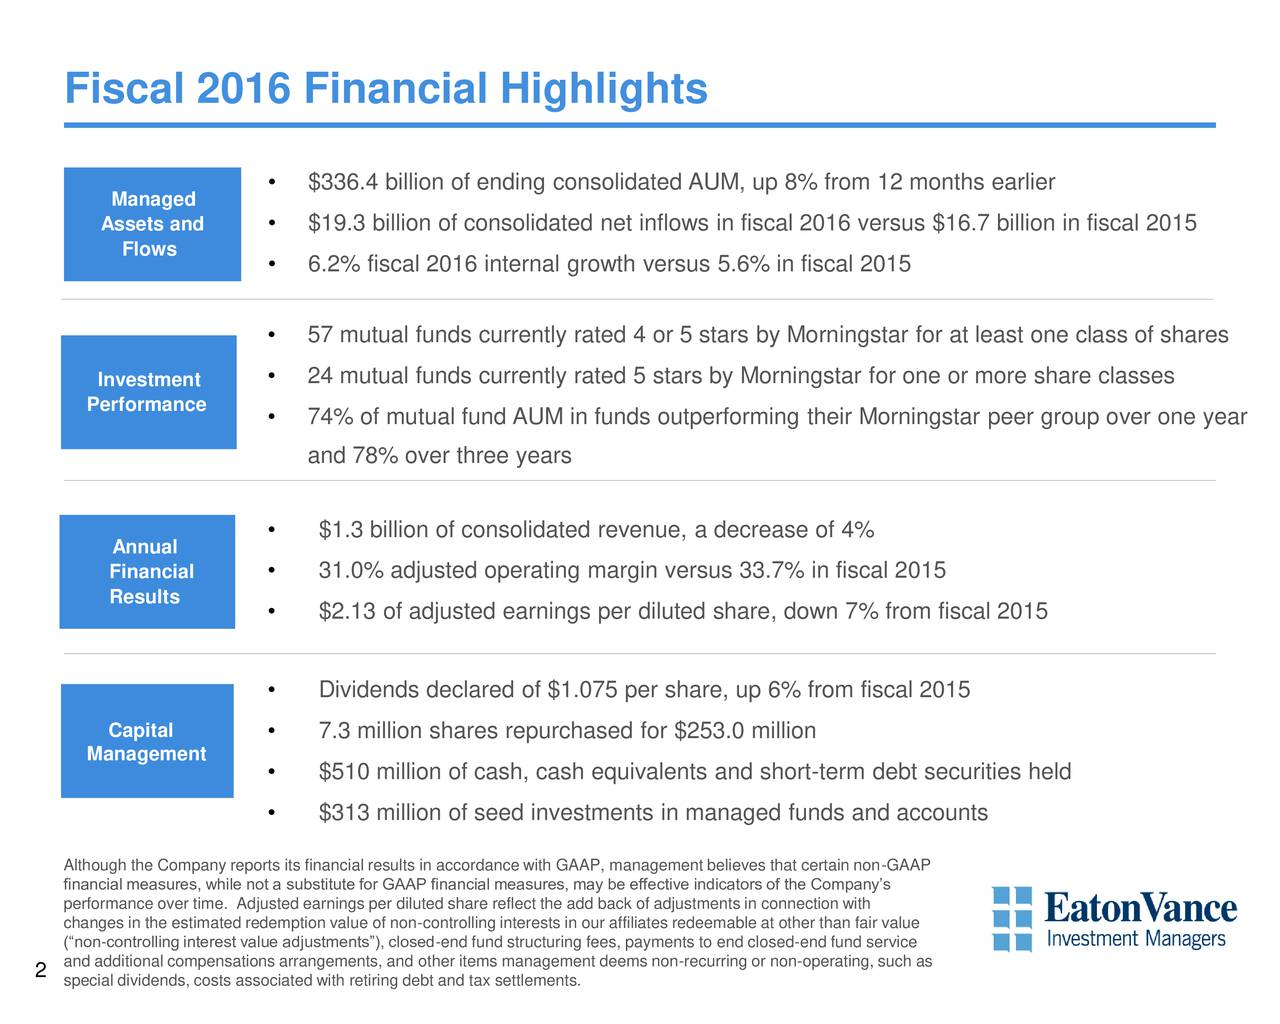 $336.4 billion of ending consolidated AUM, up 8% from 12 months earlier Managed Assets and  $19.3 billion of consolidated net inflows in fiscal 2016 versus $16.7 billion in fiscal 2015 Flows 6.2% fiscal 2016 internal growth versus 5.6% in fiscal 2015 57 mutual funds currently rated 4 or 5 stars by Morningstar for at least one class of shares Investment  24 mutual funds currently rated 5 stars by Morningstar for one or more share classes Performance  74% of mutual fund AUM in funds outperforming their Morningstar peer group over one year and 78% over three years Annual  $1.3 billion of consolidated revenue, a decrease of 4% Financial  31.0% adjusted operating margin versus 33.7% in fiscal 2015 Results $2.13 of adjusted earnings per diluted share, down 7% from fiscal 2015 Dividends declared of $1.075 per share, up 6% from fiscal 2015 Capital  7.3 million shares repurchased for $253.0 million Management $510 million of cash, cash equivalents and short-term debt securities held $313 million of seed investments in managed funds and accounts Although the Company reports its financial results in accordance with GAAP, management believes that certain non-GAAP performance over time. Adjusted earnings per diluted share reflect the add back of adjustments in connection withys changes in the estimated redemption value of non-controlling interests in our affiliates redeemable at other than fair value (non-controlling interest value adjustments), closed-end fund structuring fees, payments to end closed-end fund service and additional compensations arrangements, and other items management deems non-recurring or non-operating, such as 2 special dividends, costs associated with retiring debt and tax settlements.